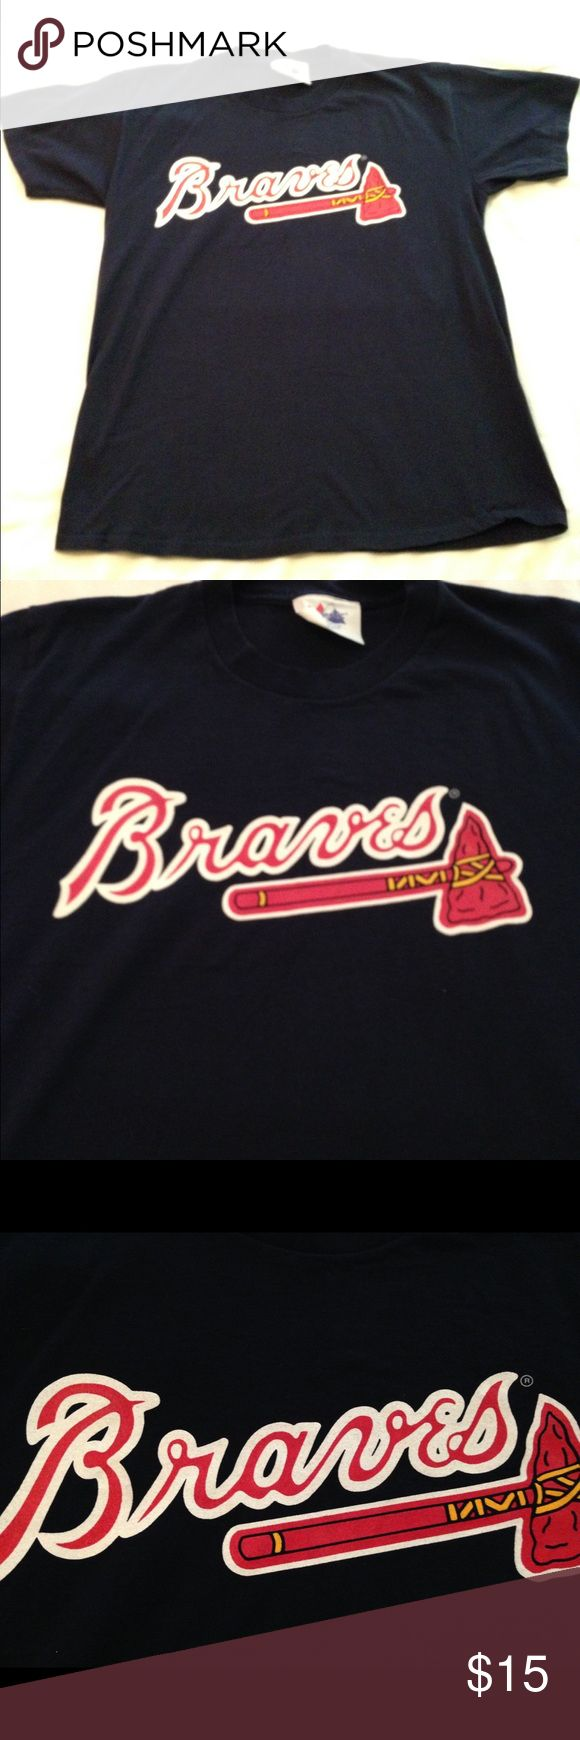 "Vintage Atlanta Braves Tshirt Sz Large Vintage Atlanta Braves Tshirt Sz Large in great preowned condition. Armpit to armpit 20"", Made in USA. Shirts Tees - Short Sleeve"